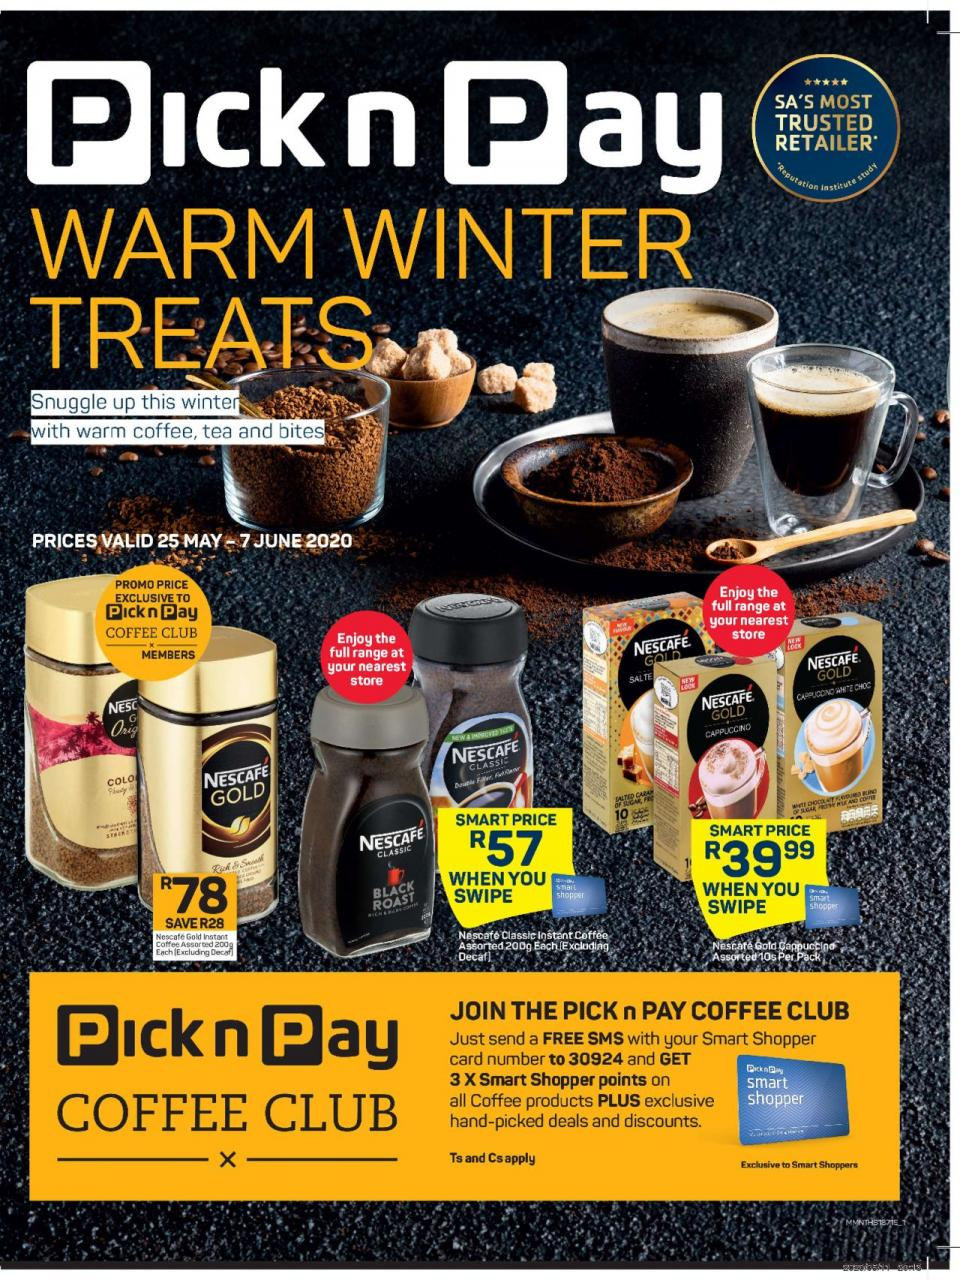 pick n pay specials winter beverages 25 may 2020